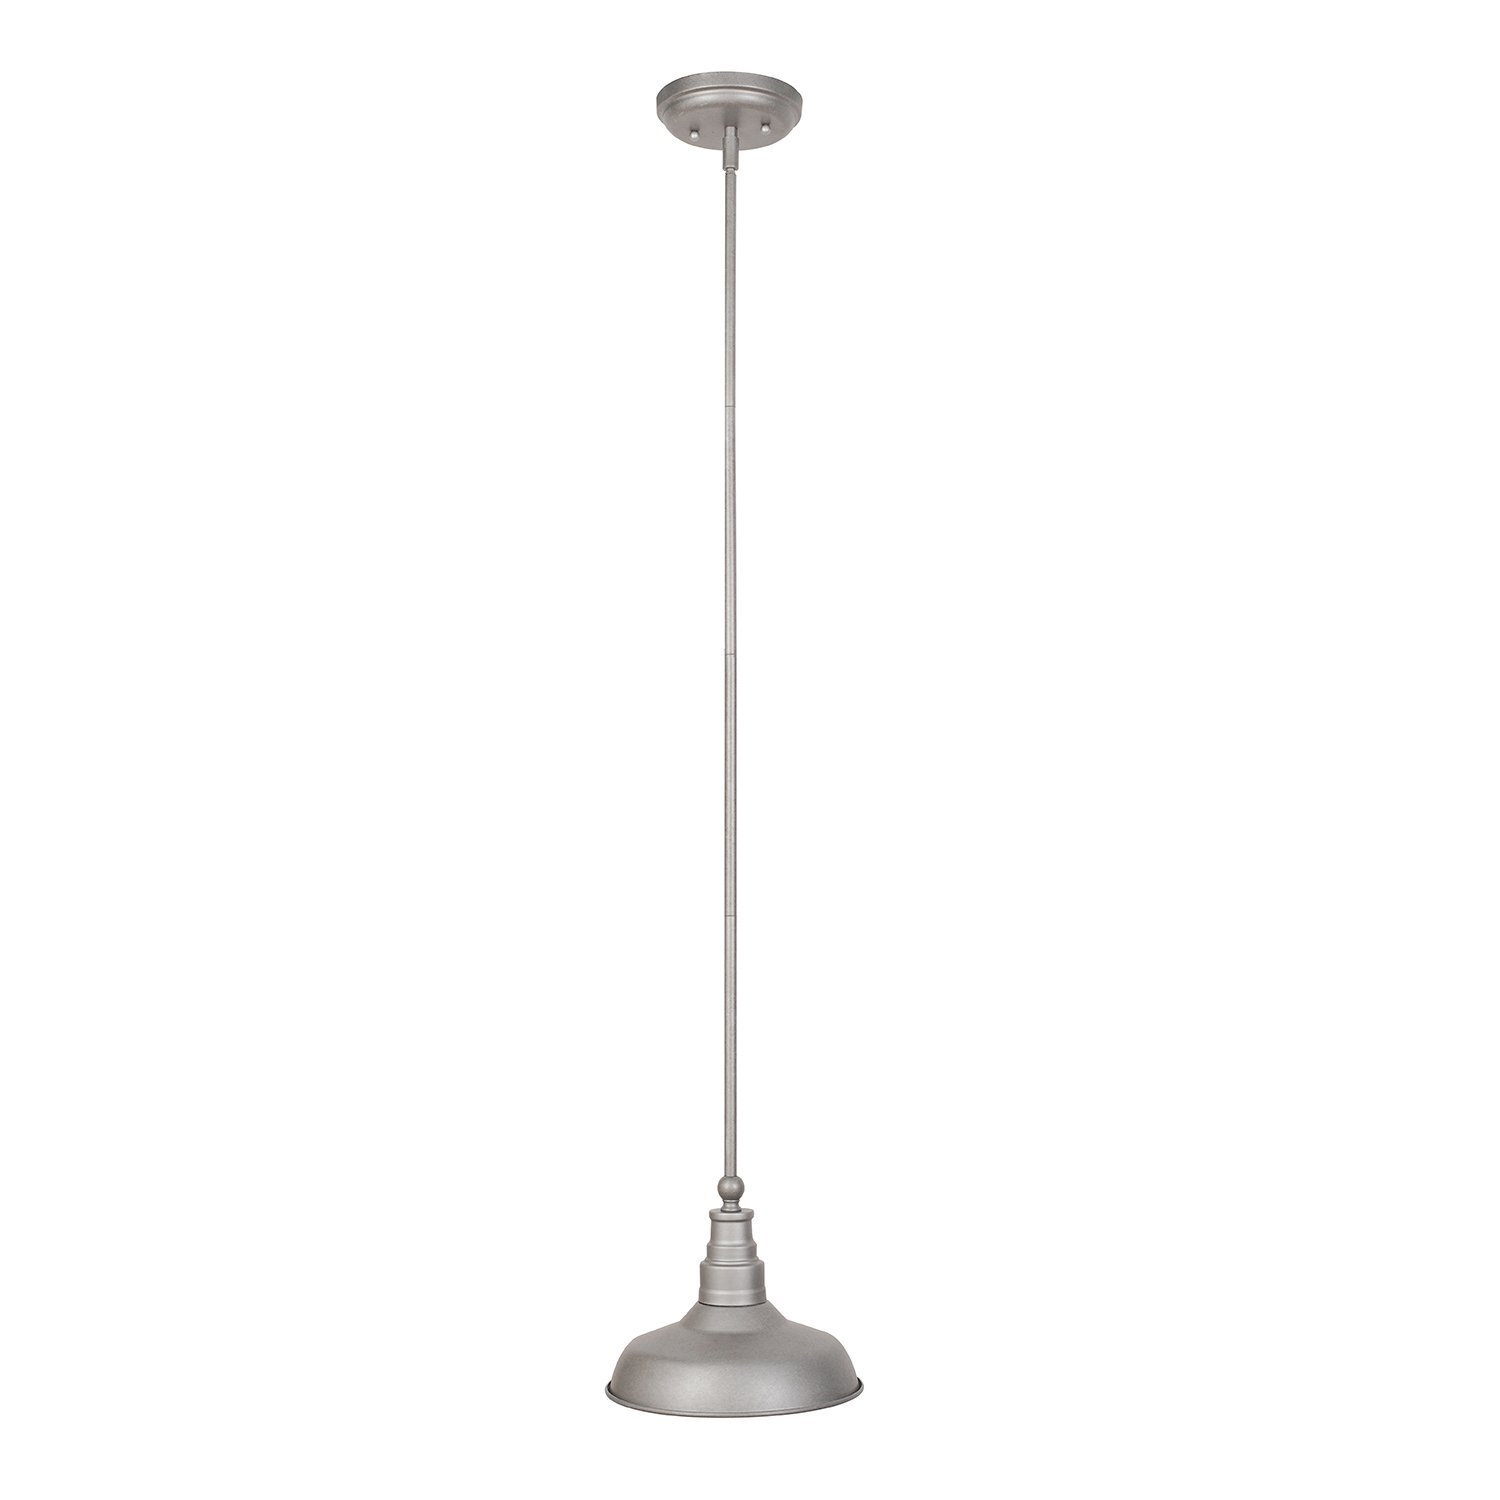 Design House Kimball 1-Light Pendant, Galvanized Steel Finish - 519819